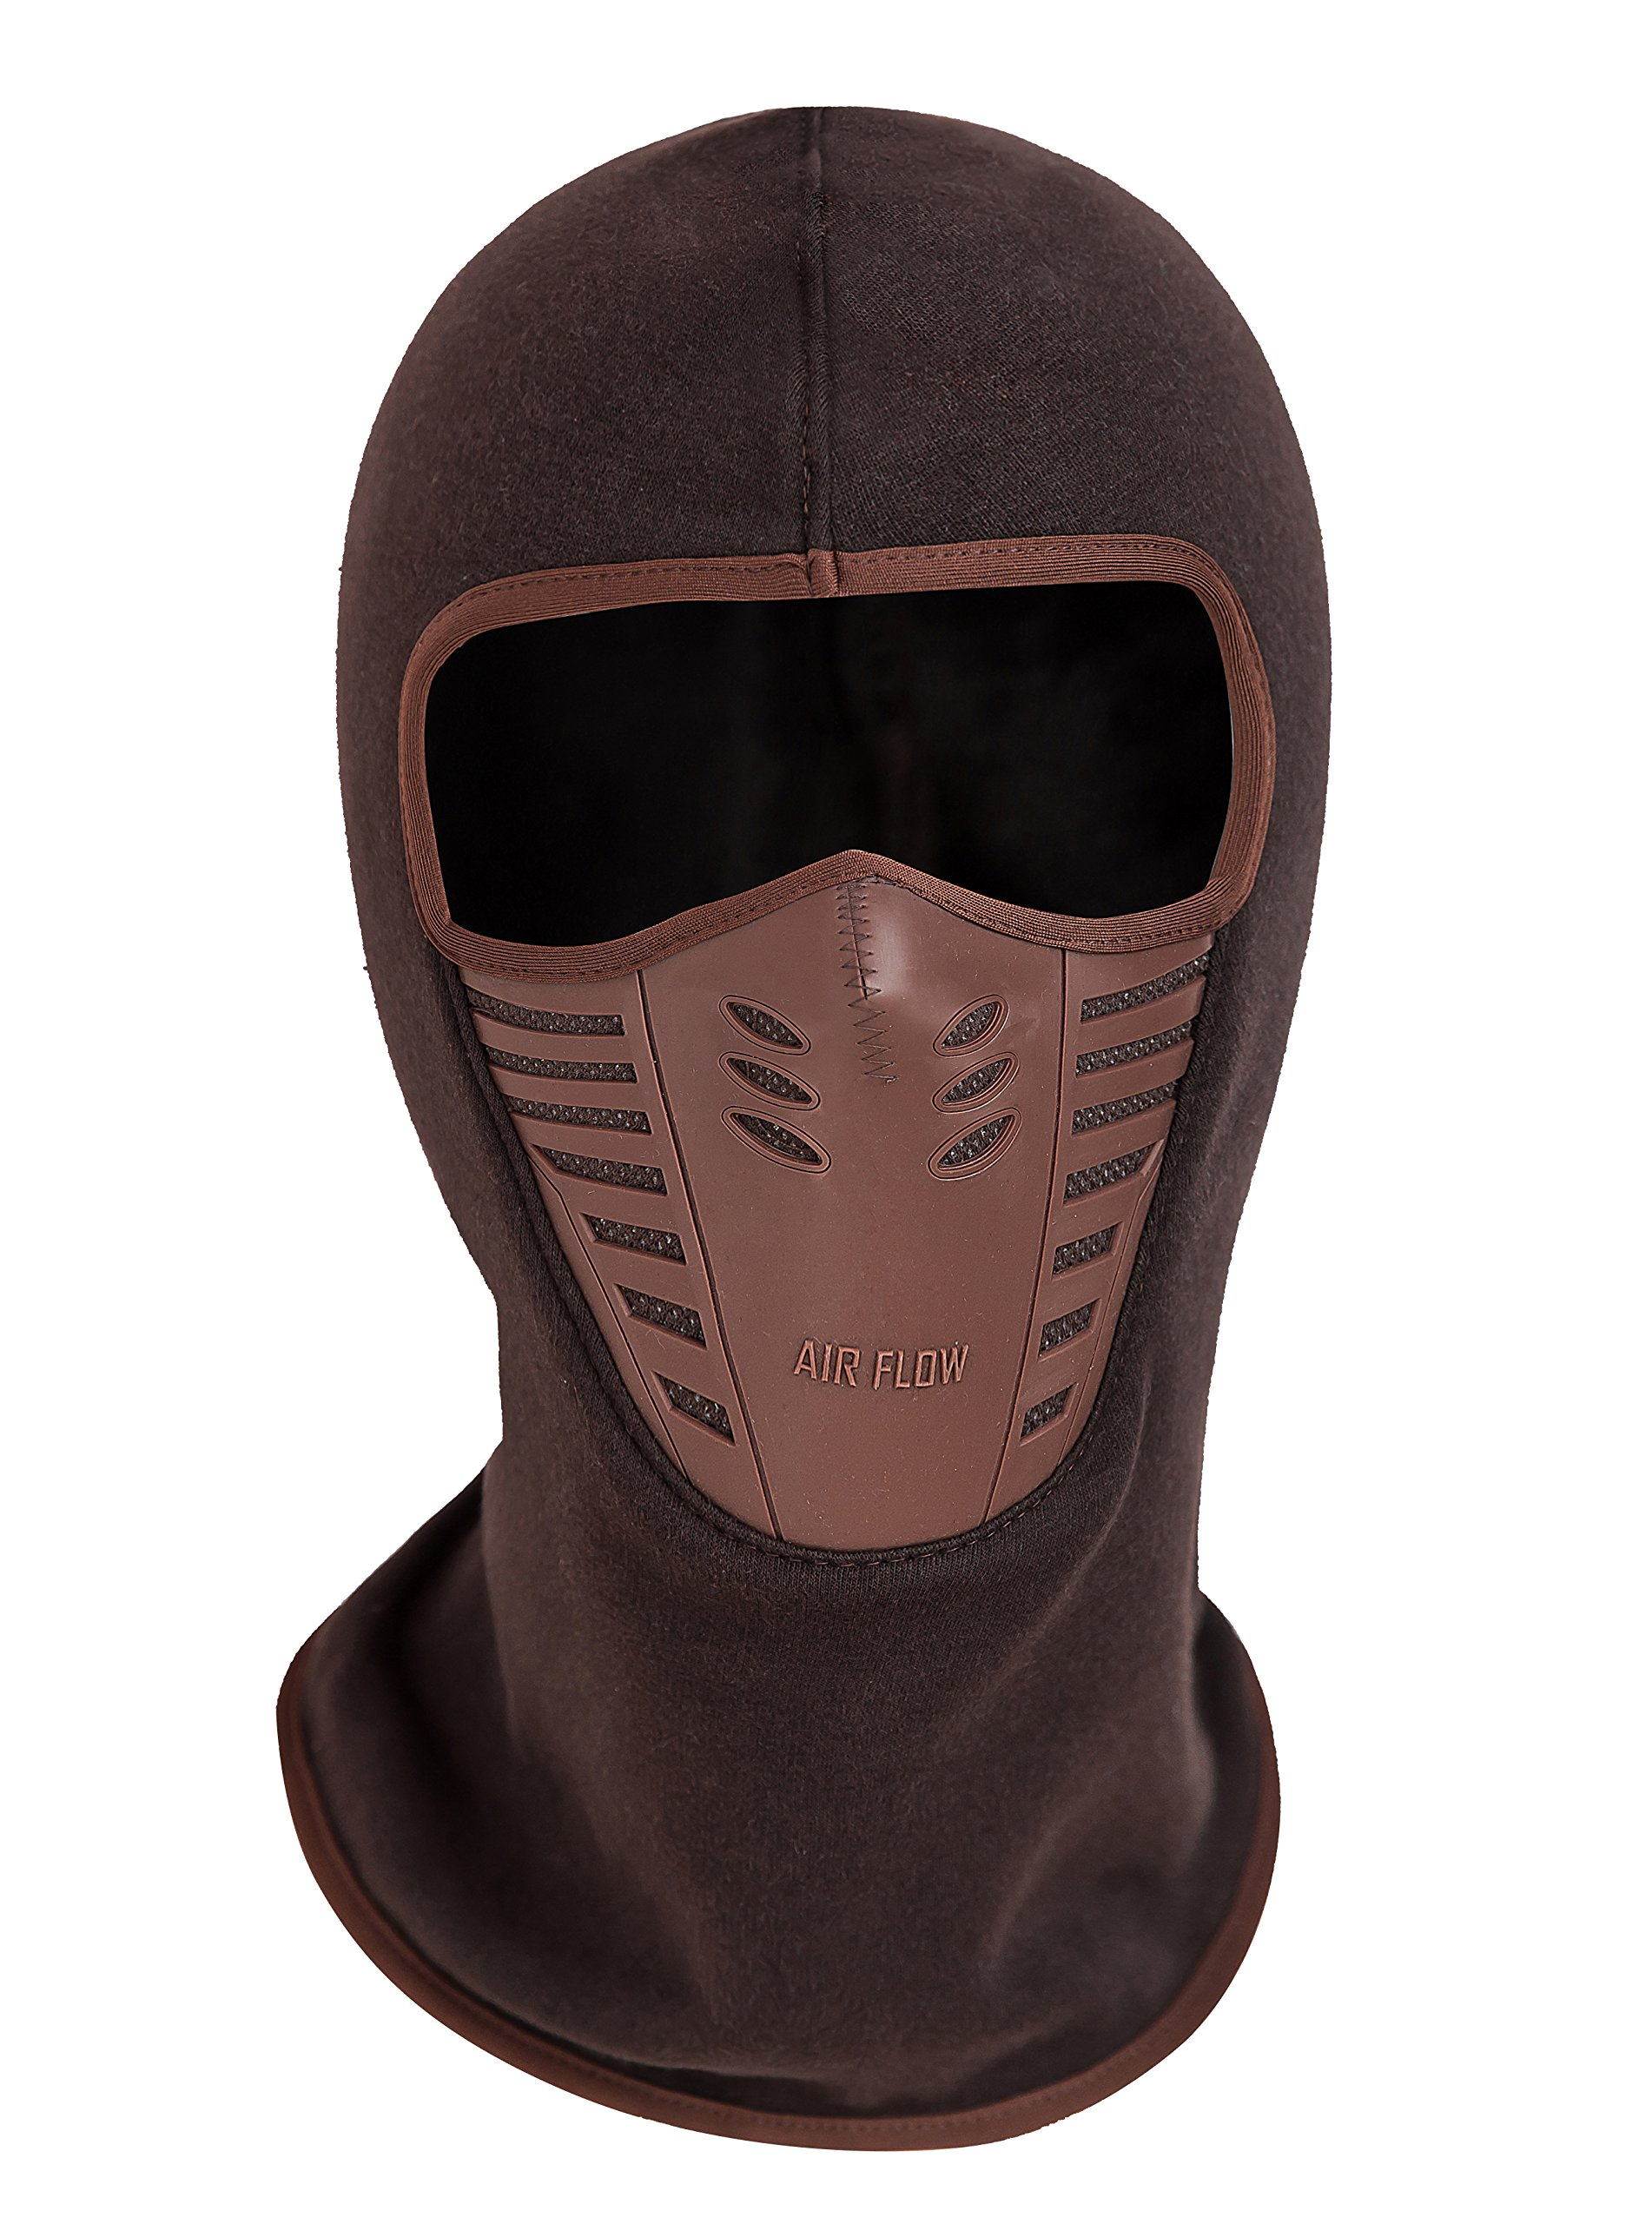 Zerd Winter Fleece Warm Full Face Cover Anti-dust Balaclava Windproof Ski Mask Hat Red Brown